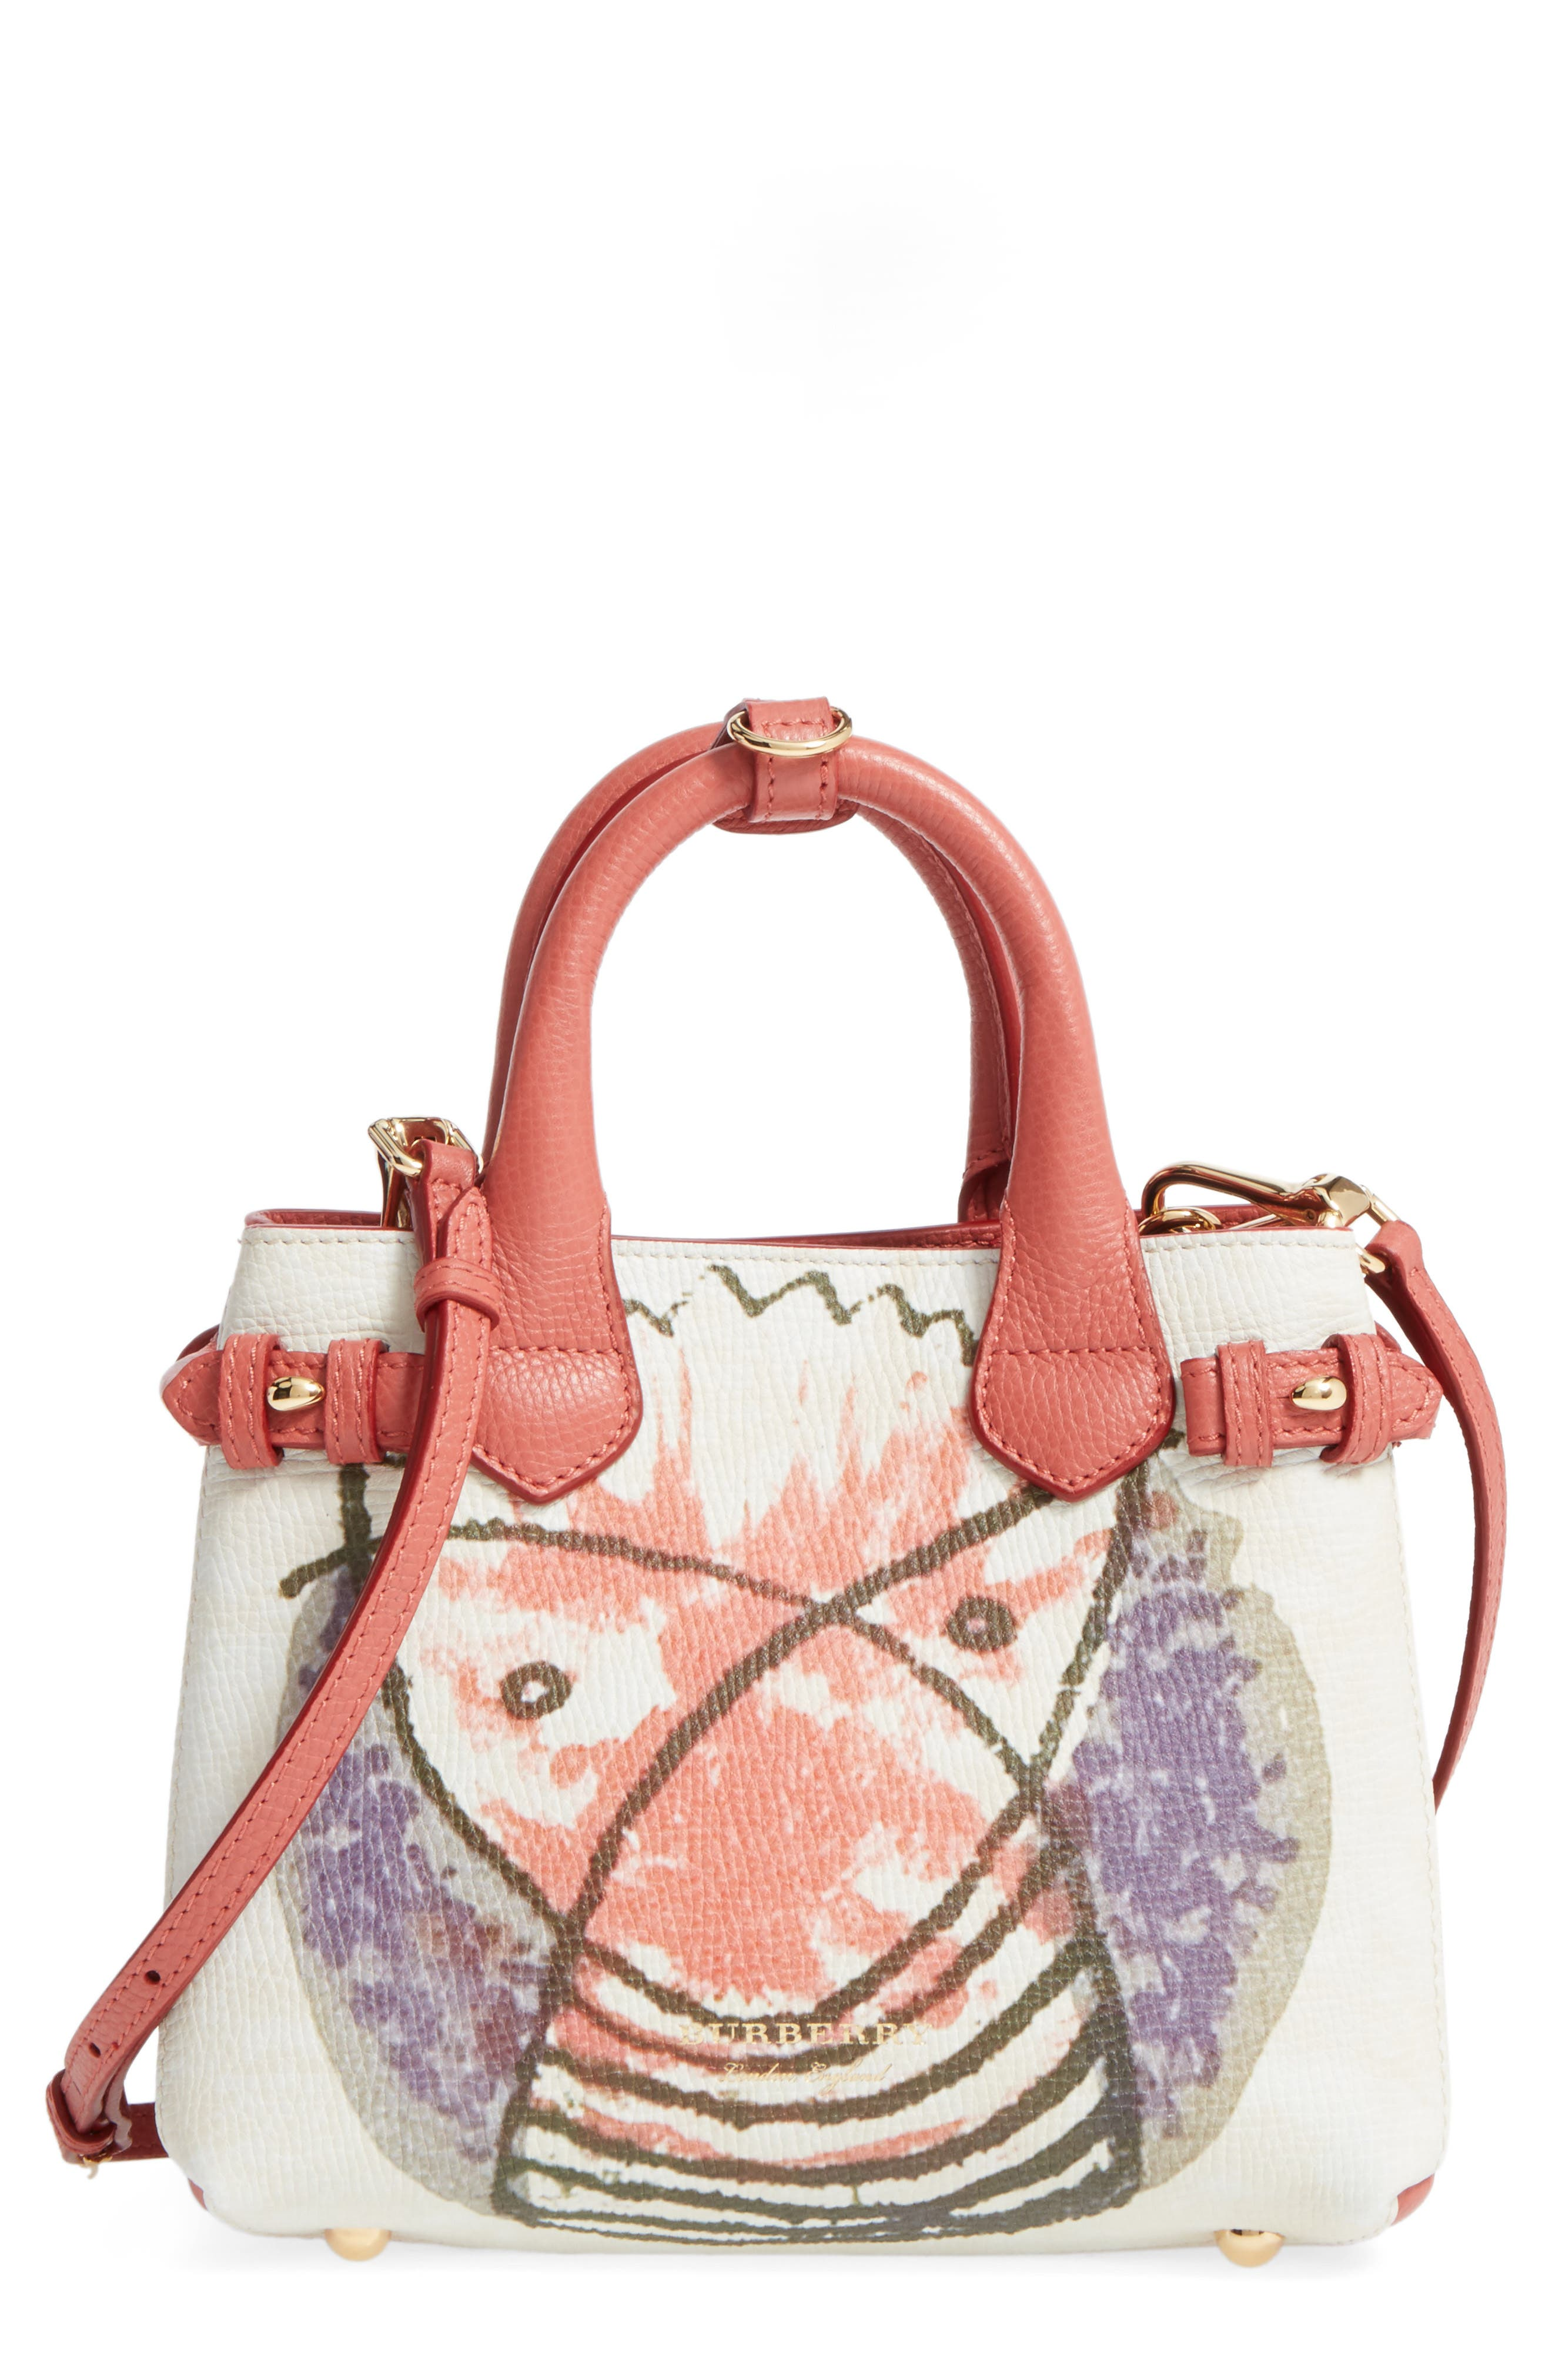 Burberry Small Banner - Palace Print Leather Tote